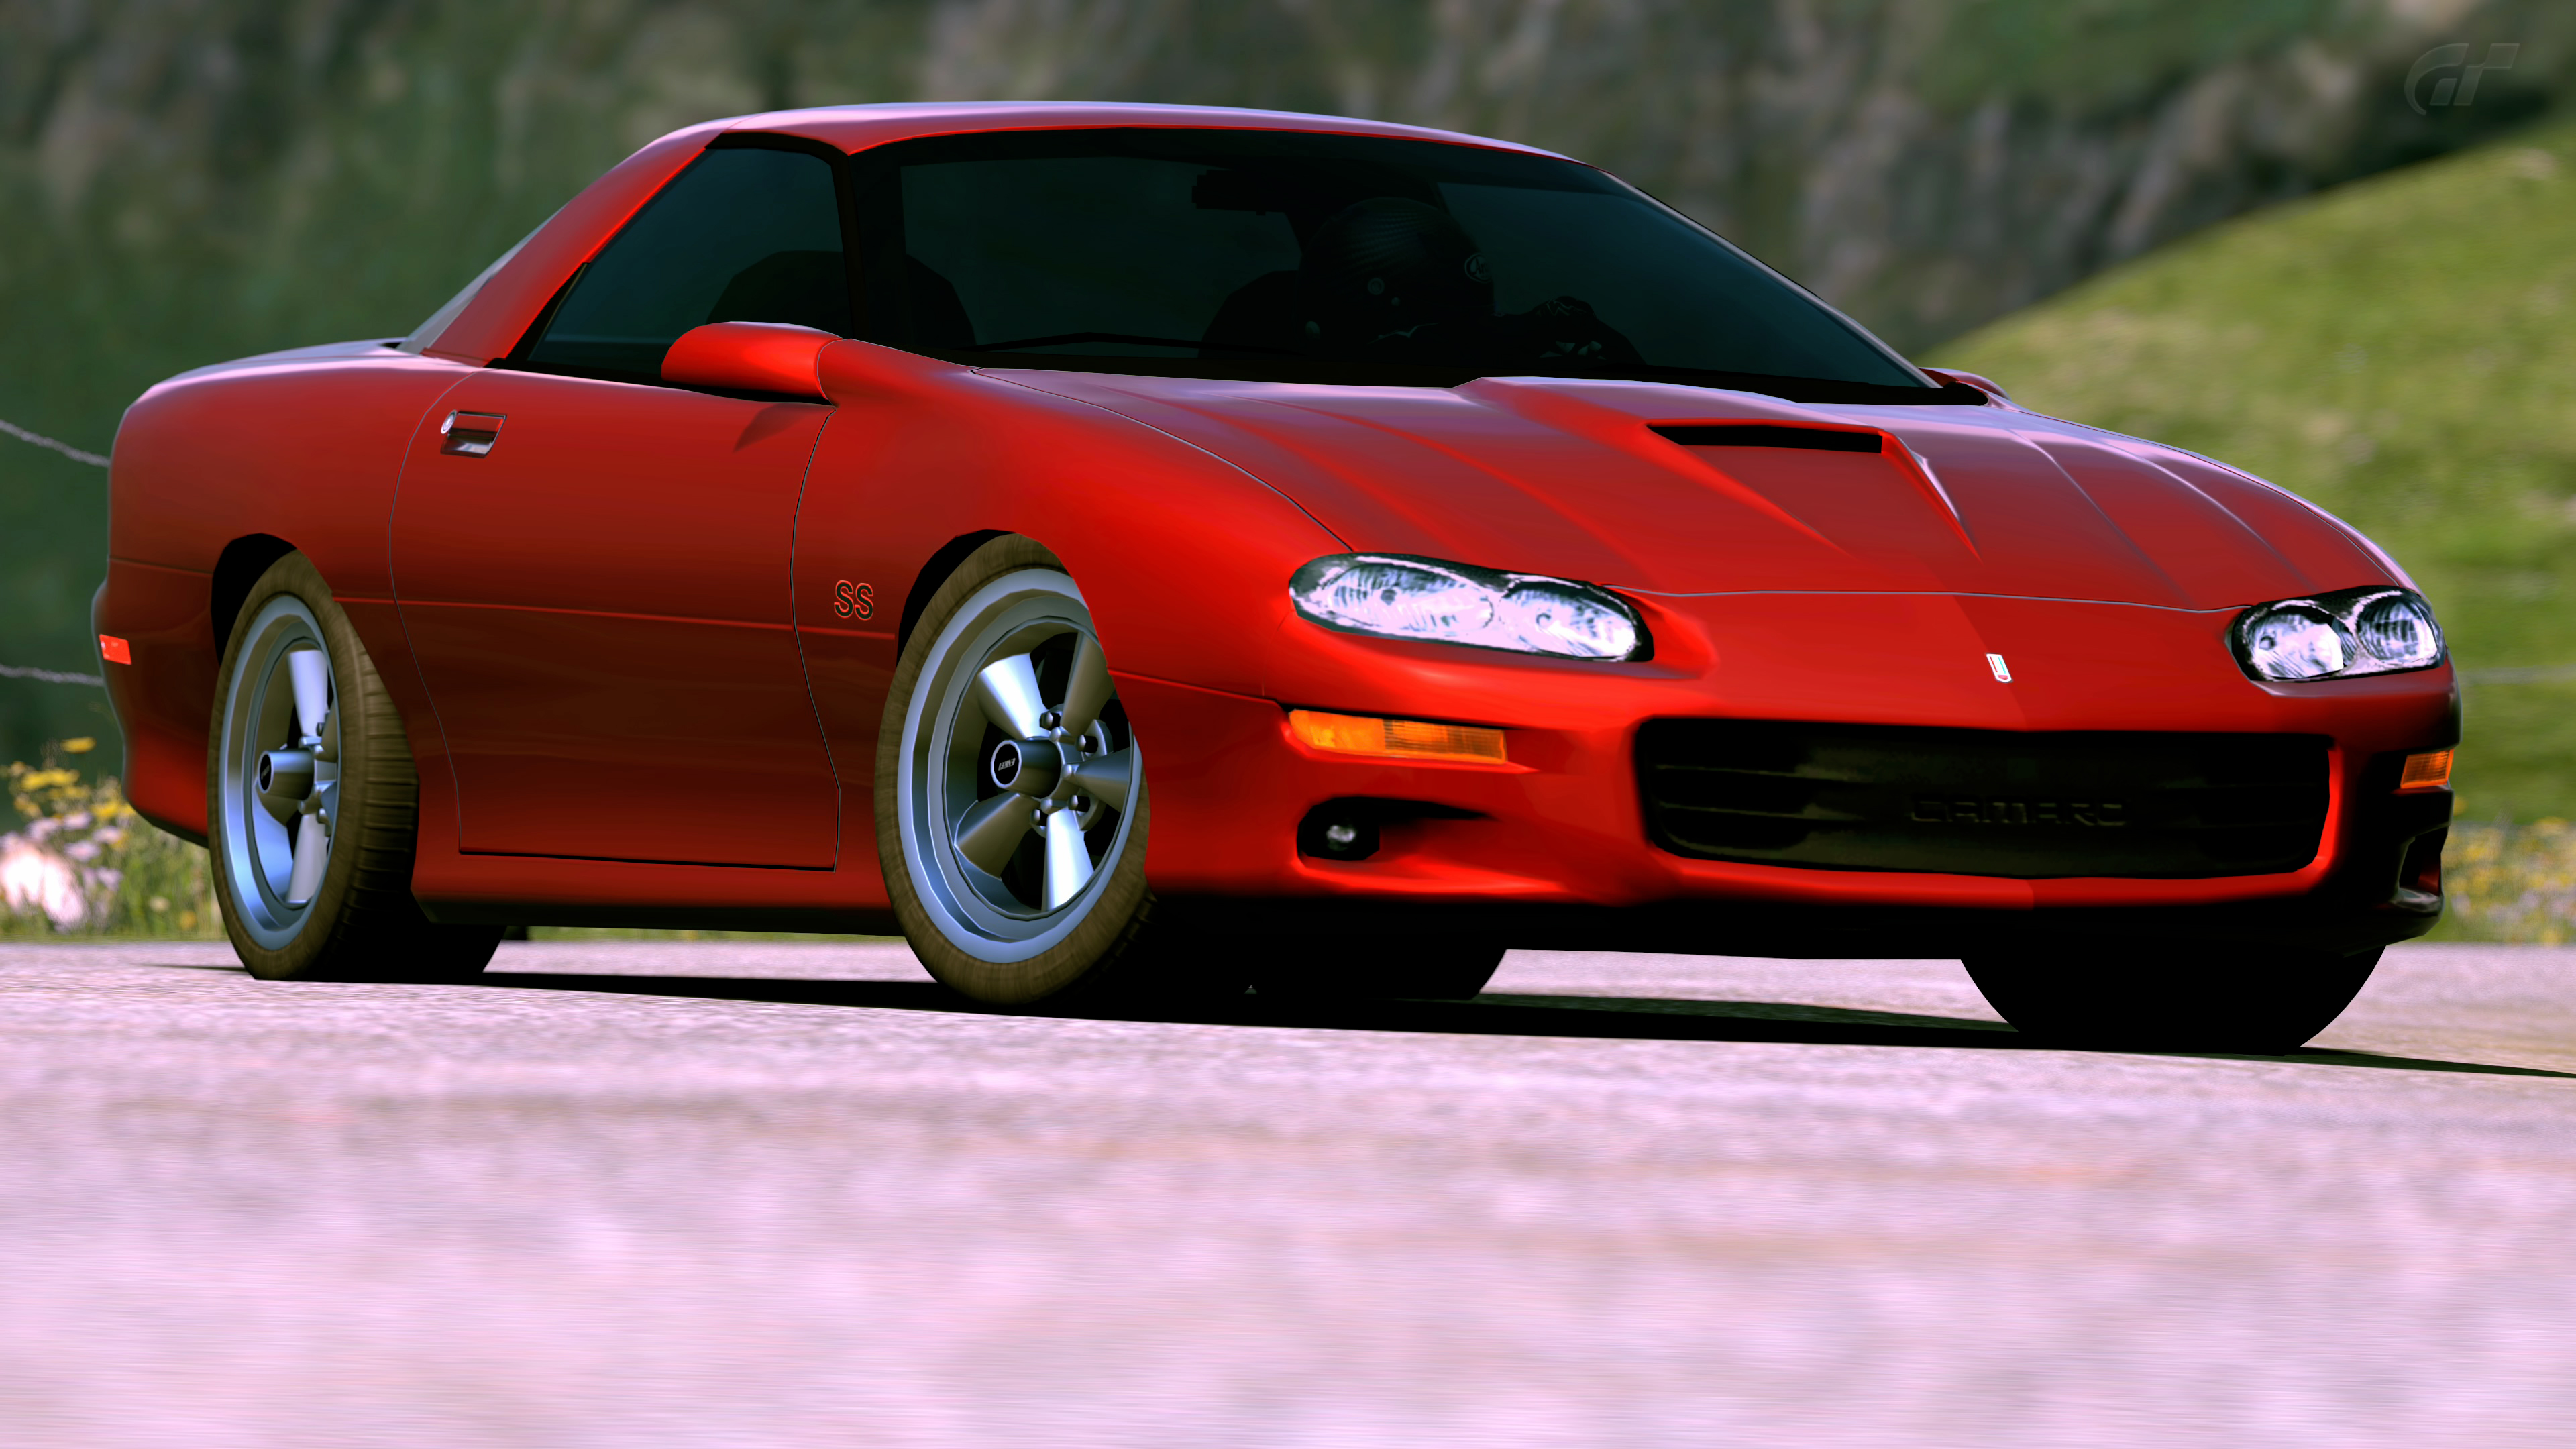 2000 chevrolet camaro ss gran turismo 6 by vertualissimo. Black Bedroom Furniture Sets. Home Design Ideas